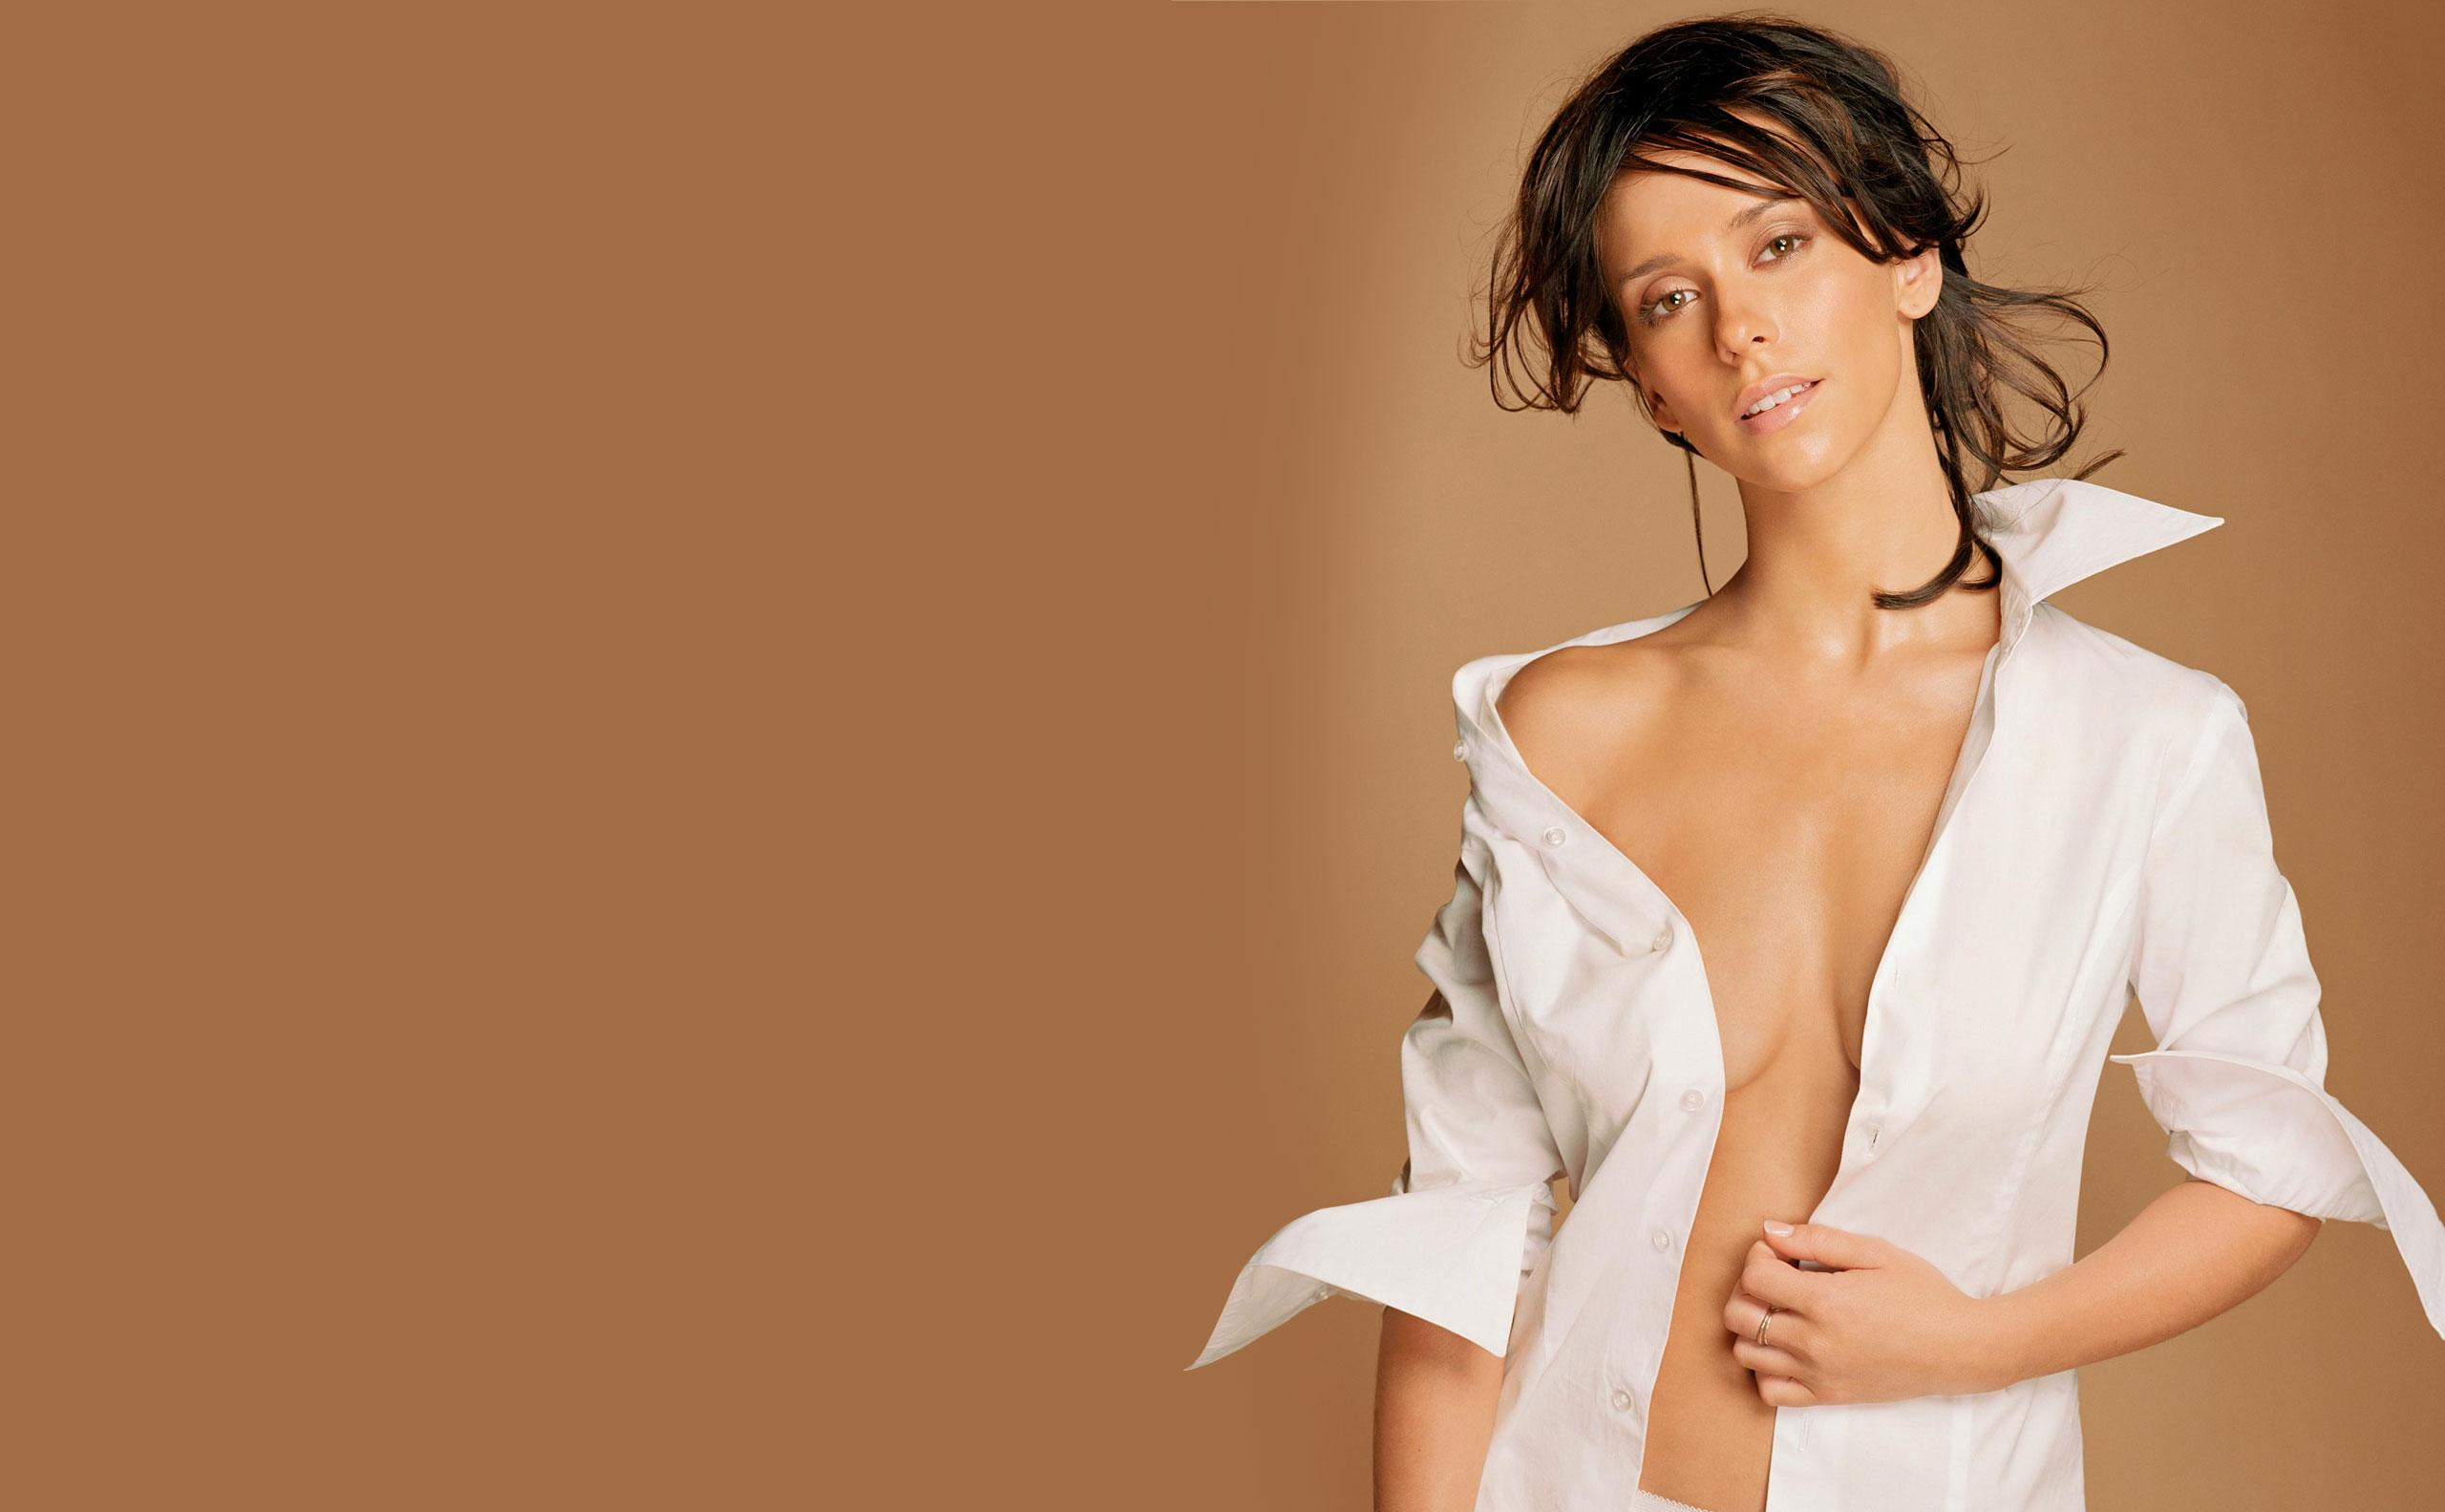 Wallpaper Hd Jennifer Love : Jennifer Love Hewitt Wallpapers, Pictures, Images